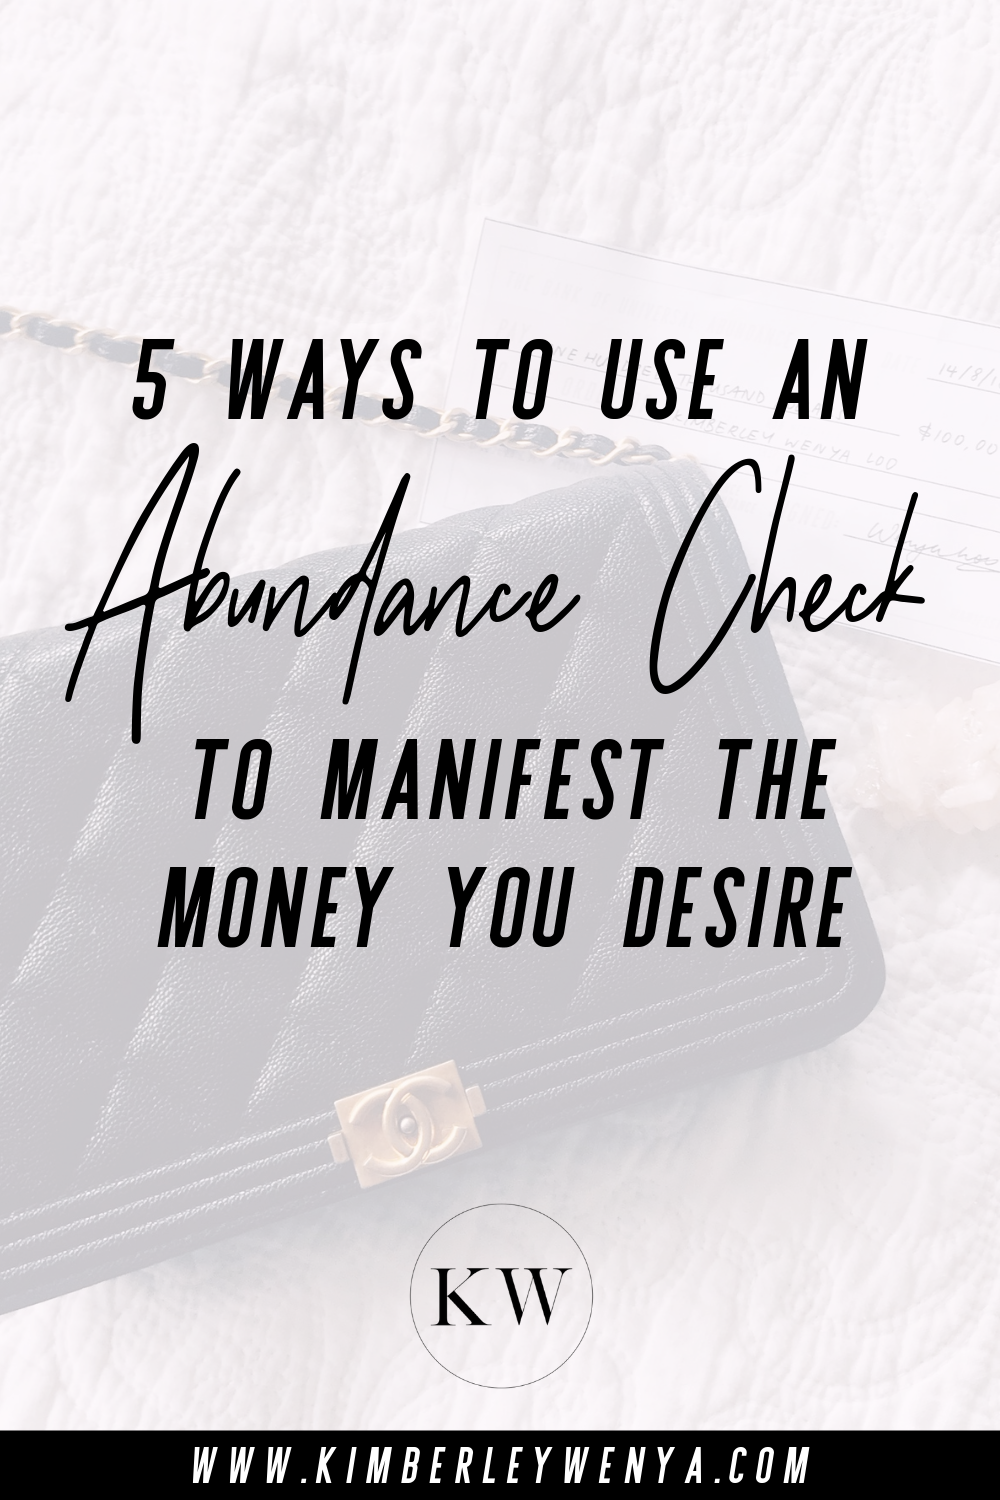 how-to-use-an-abundance-check-to-manifest-money.jpg